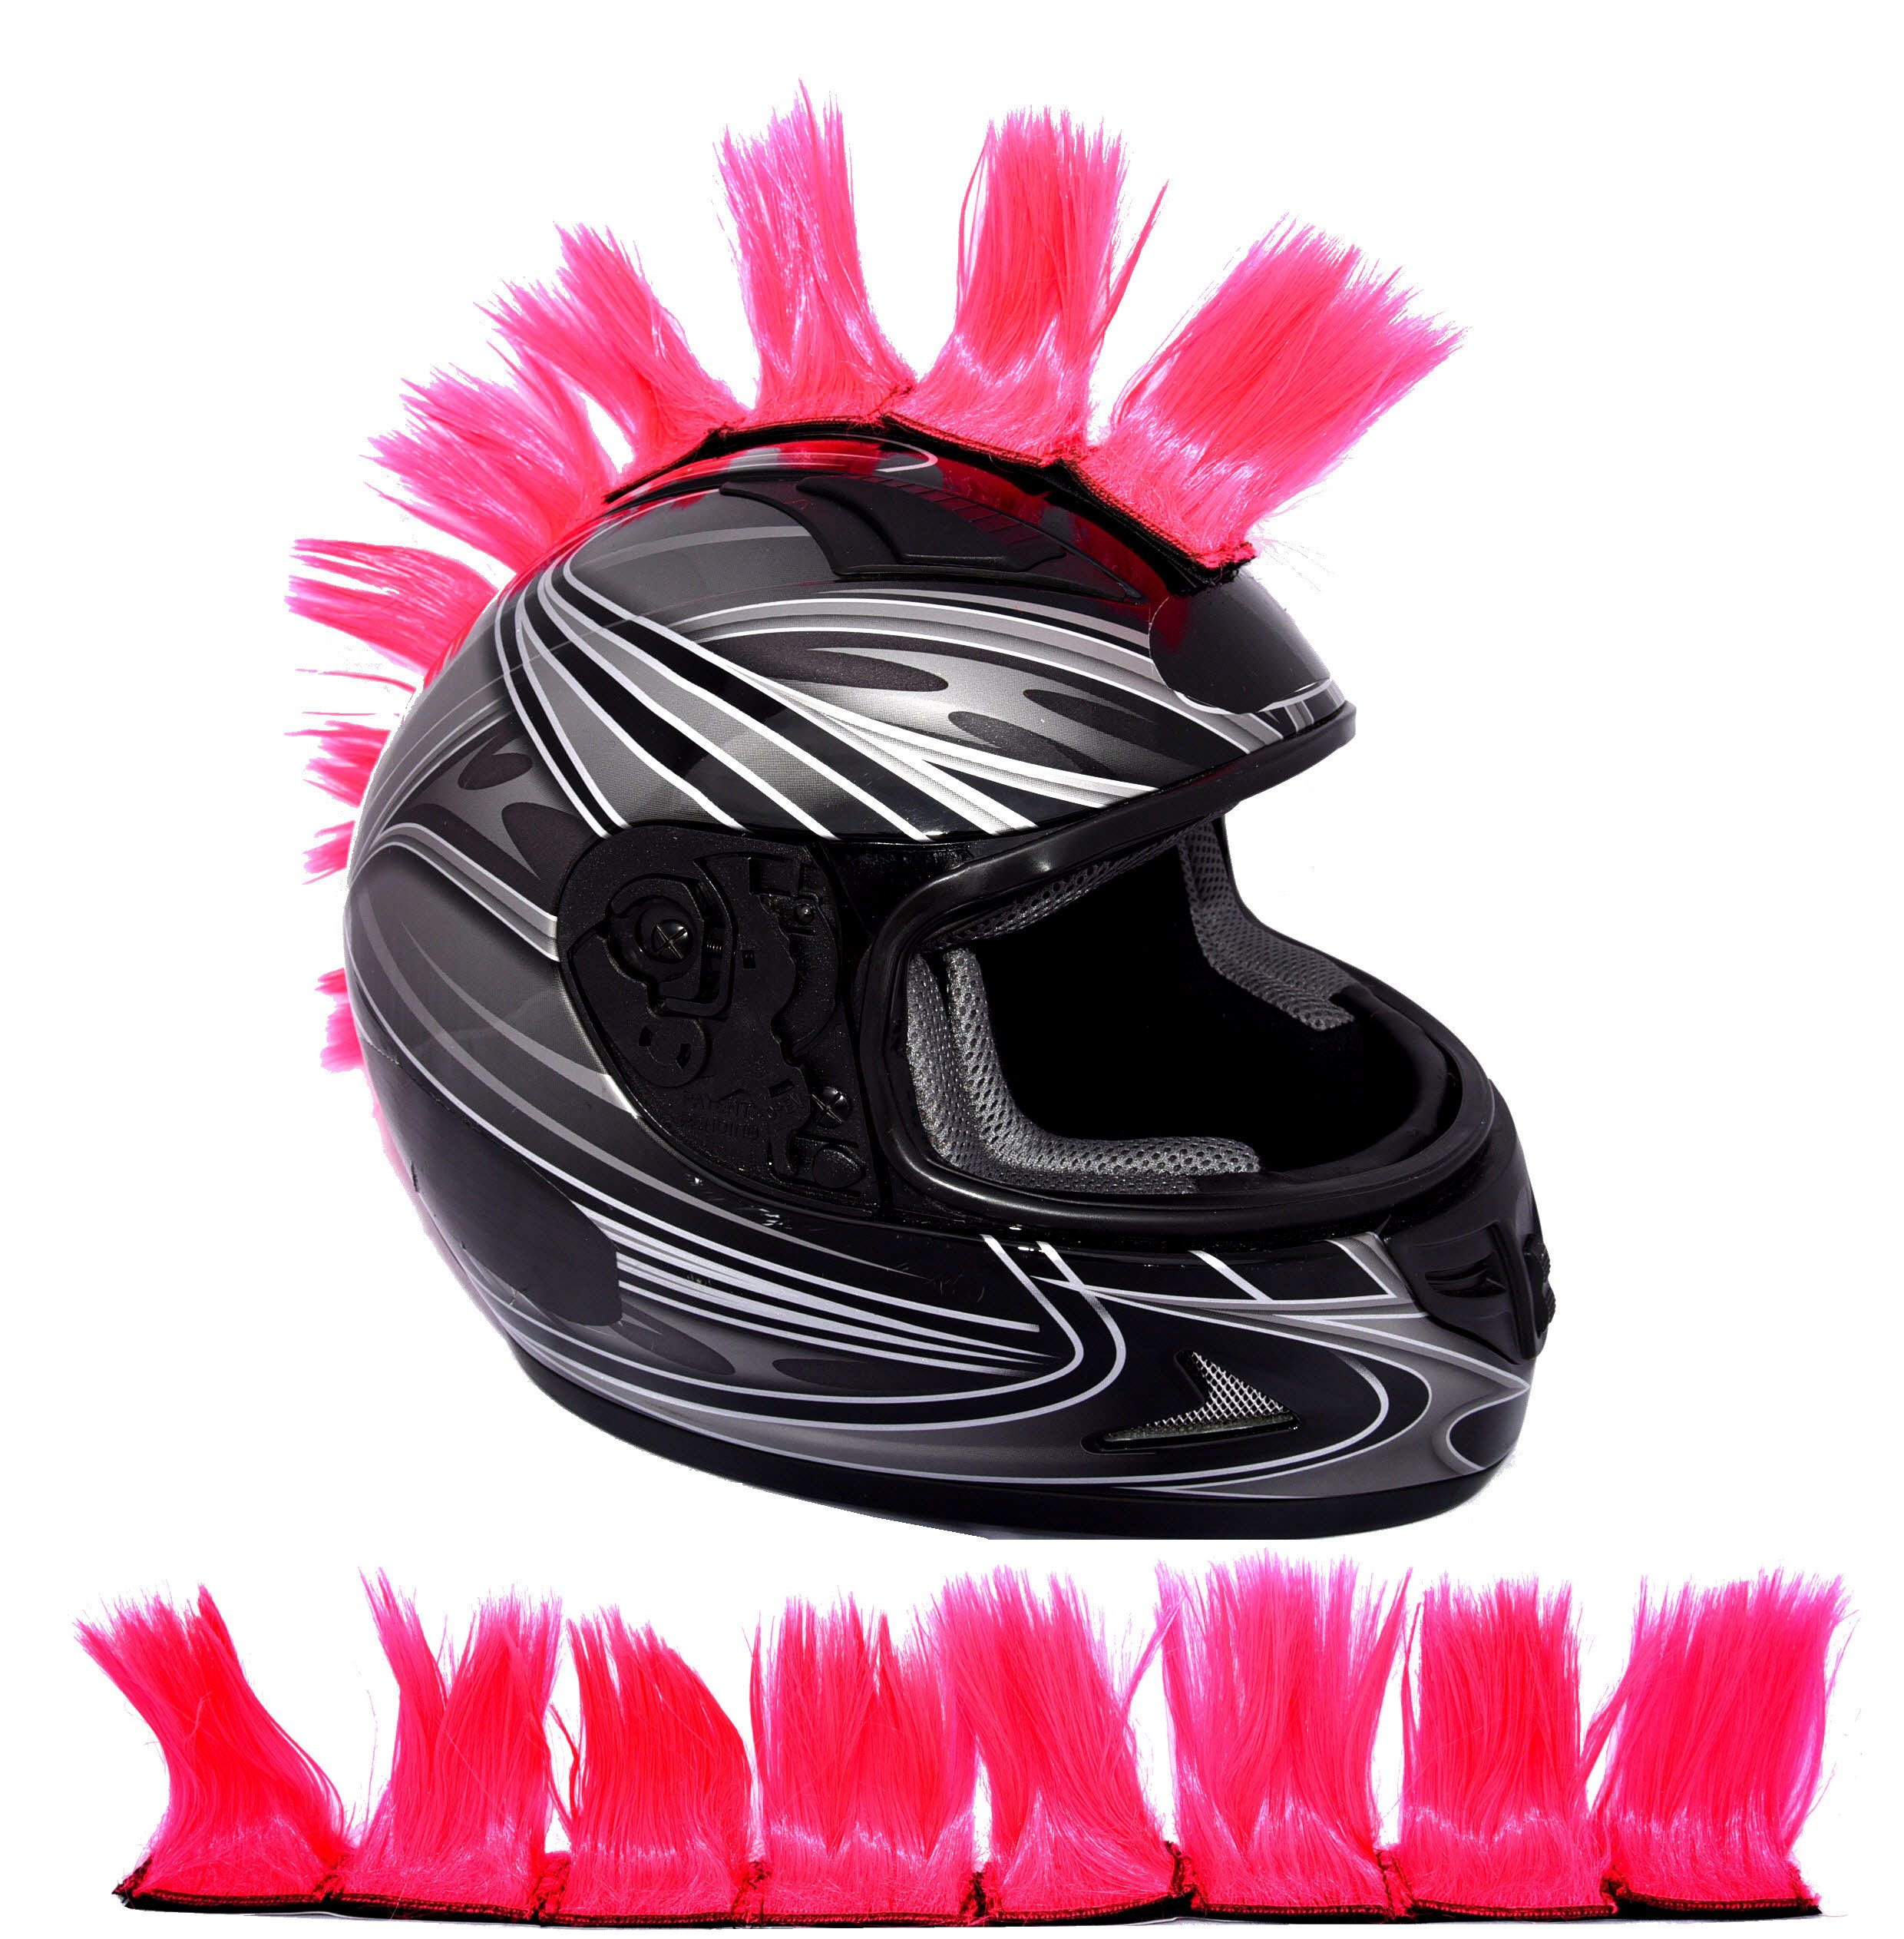 Fluorescent Hot Pink Ski or Snowboard Helmet Mohawk w//Sticky Hook and Loop Fastener Adhesive Hair Patches 2 long x 3 Tall 8 Helmet Hawks Motorcycle